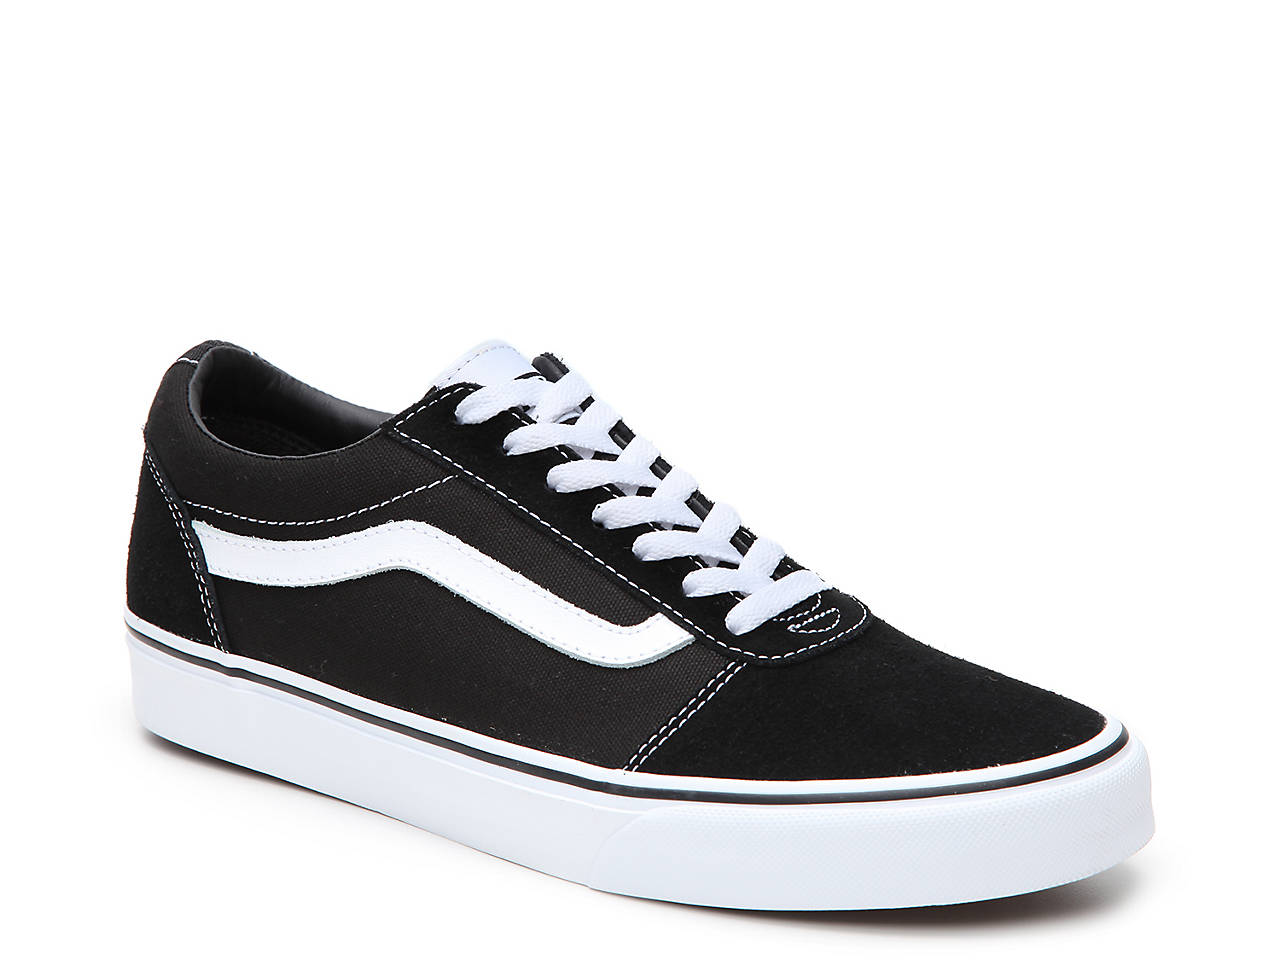 Cute Vans Shoes For Womens